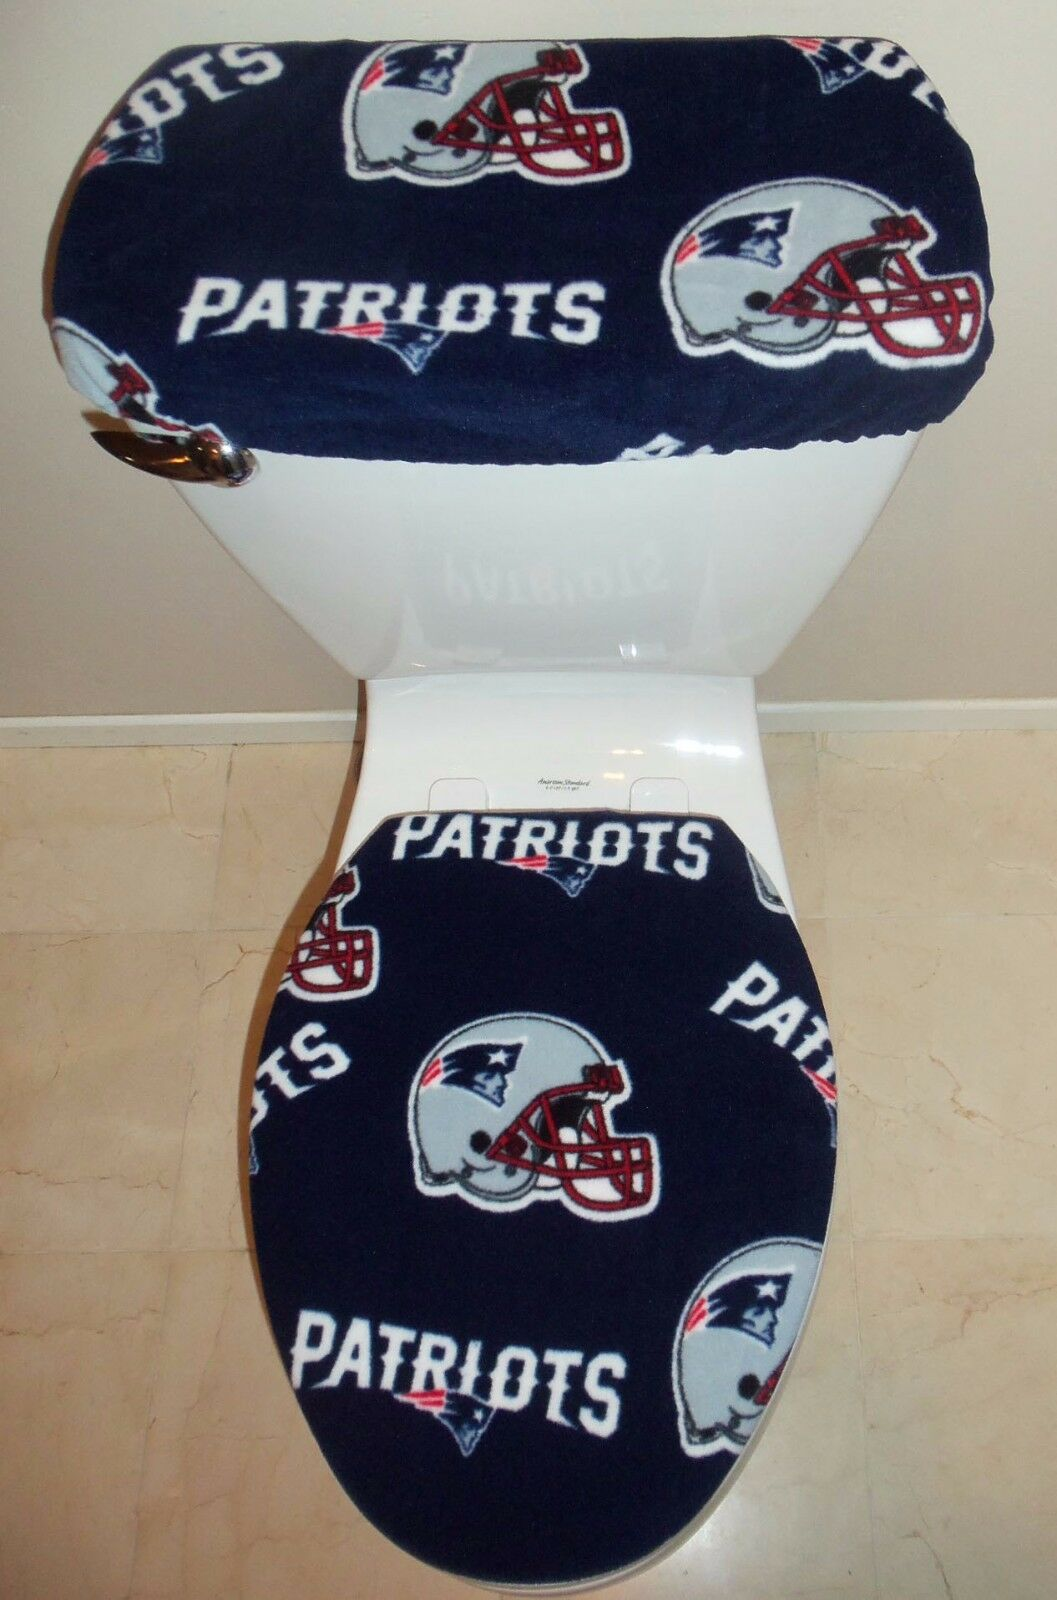 Nfl New England Patriots Toilet Seat Cover Set Bathroom Accessories 1 Of 1only 0 Available